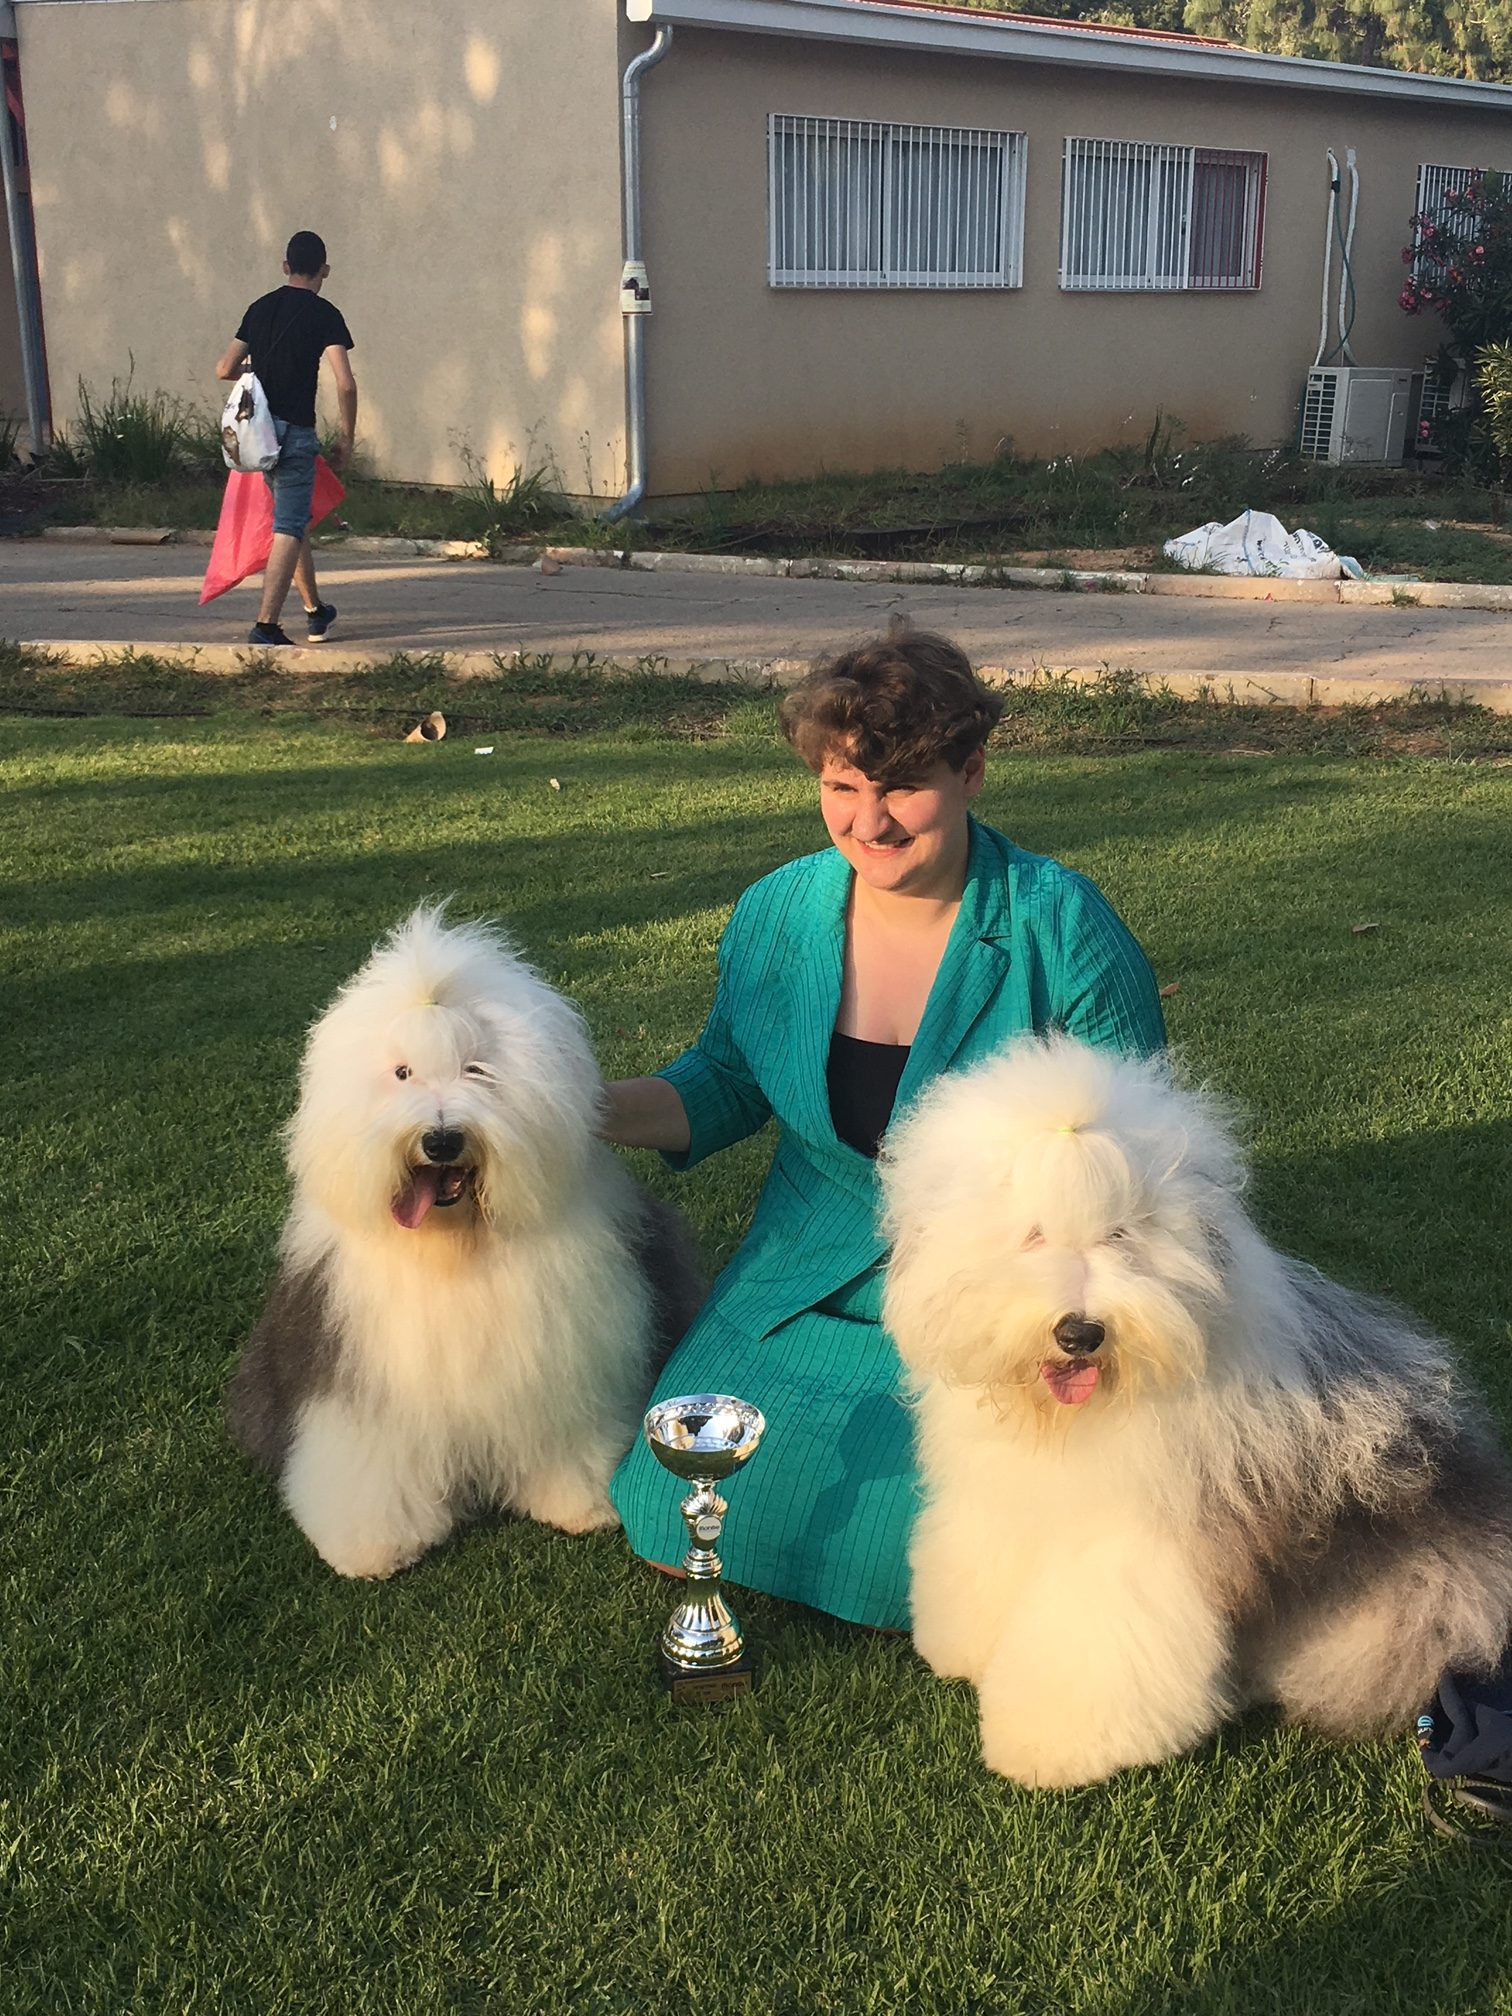 Dog show in Israel.